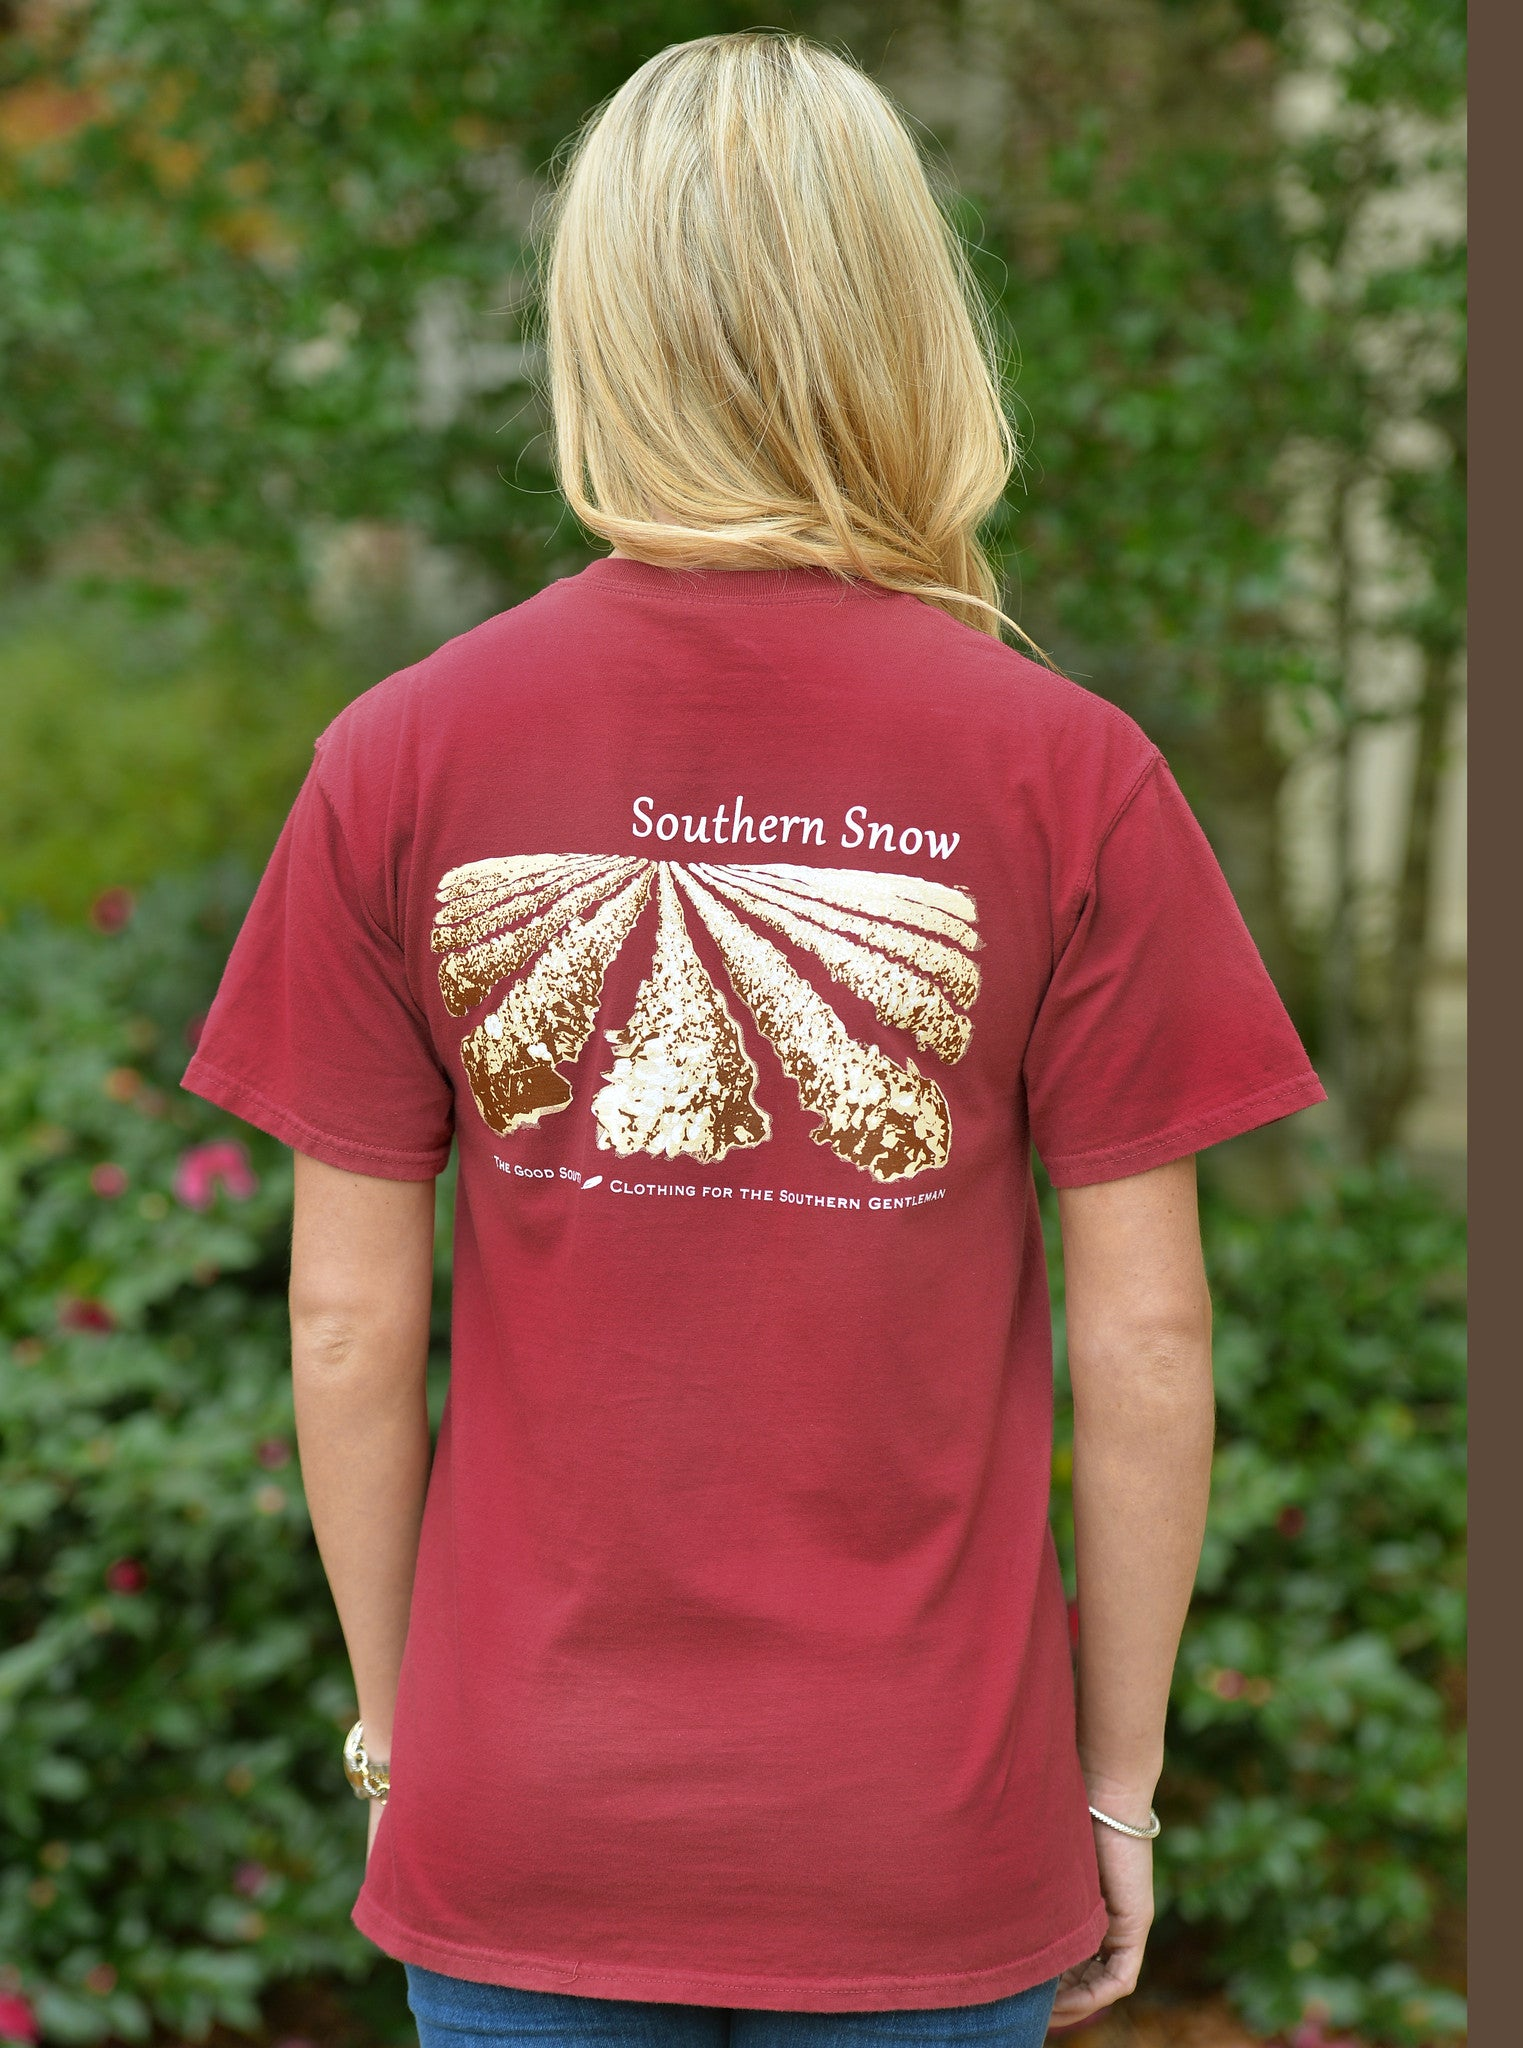 Southern Snow T-Shirt